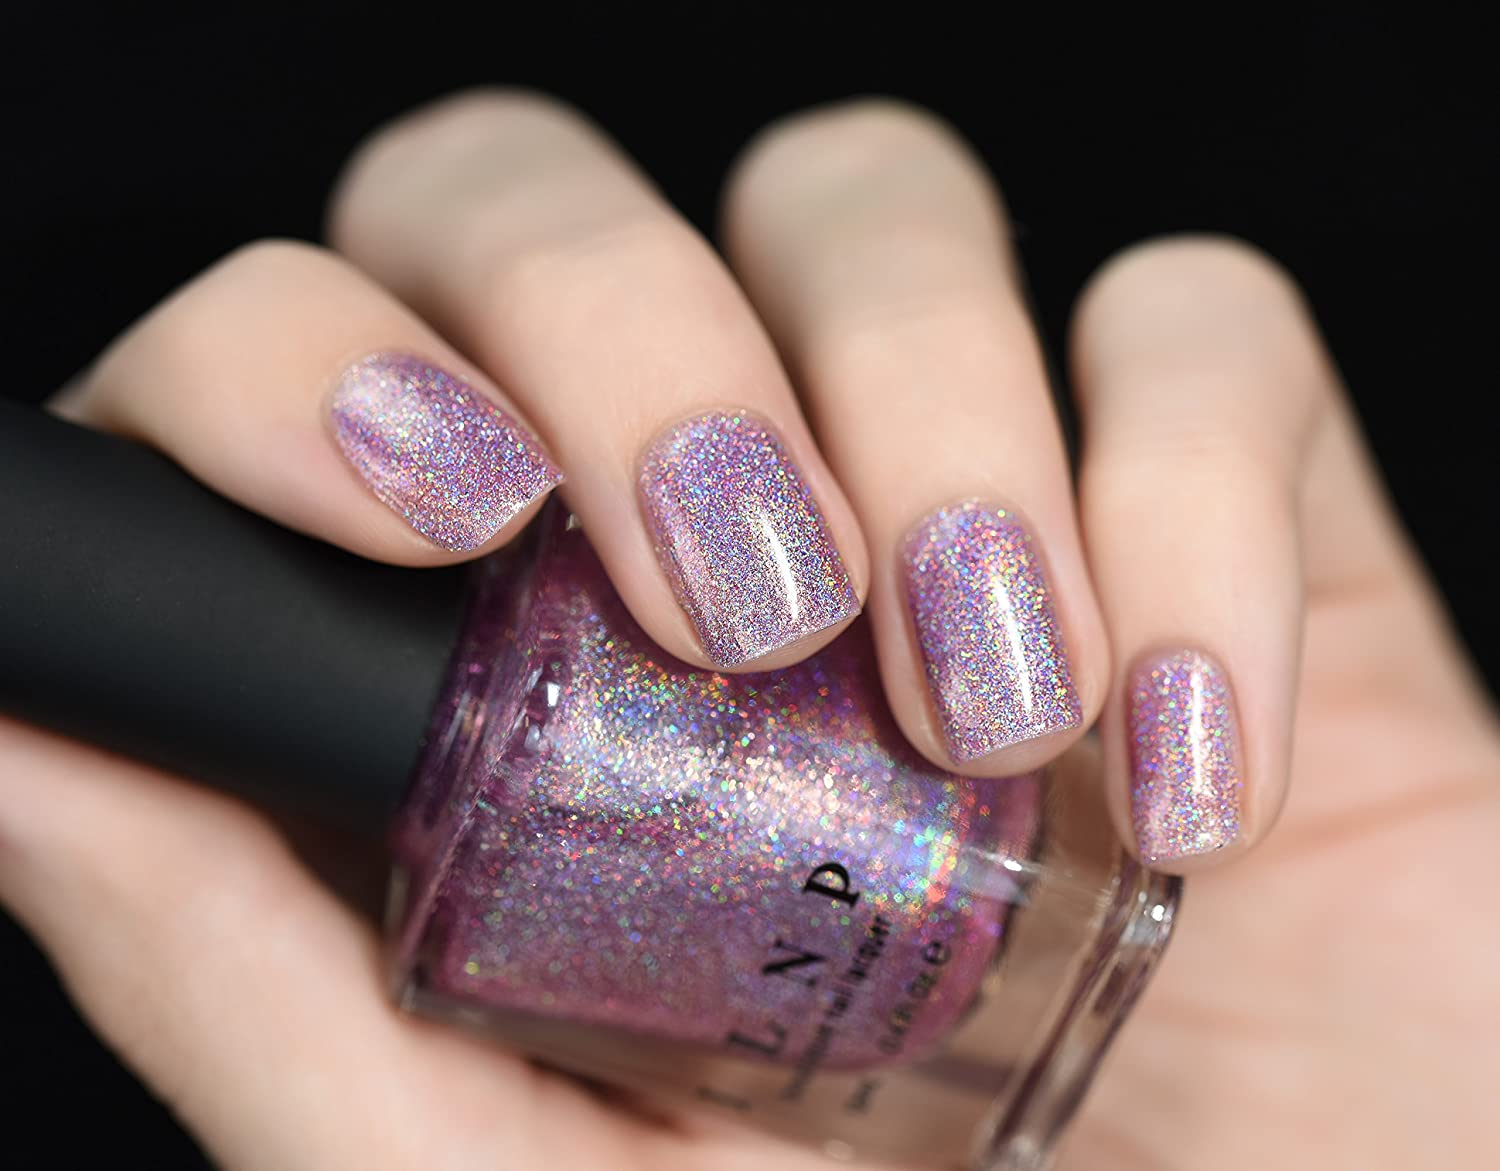 Amazon.com : ILNP Dream Girl - Light Orchid Ultra Holographic Nail ...